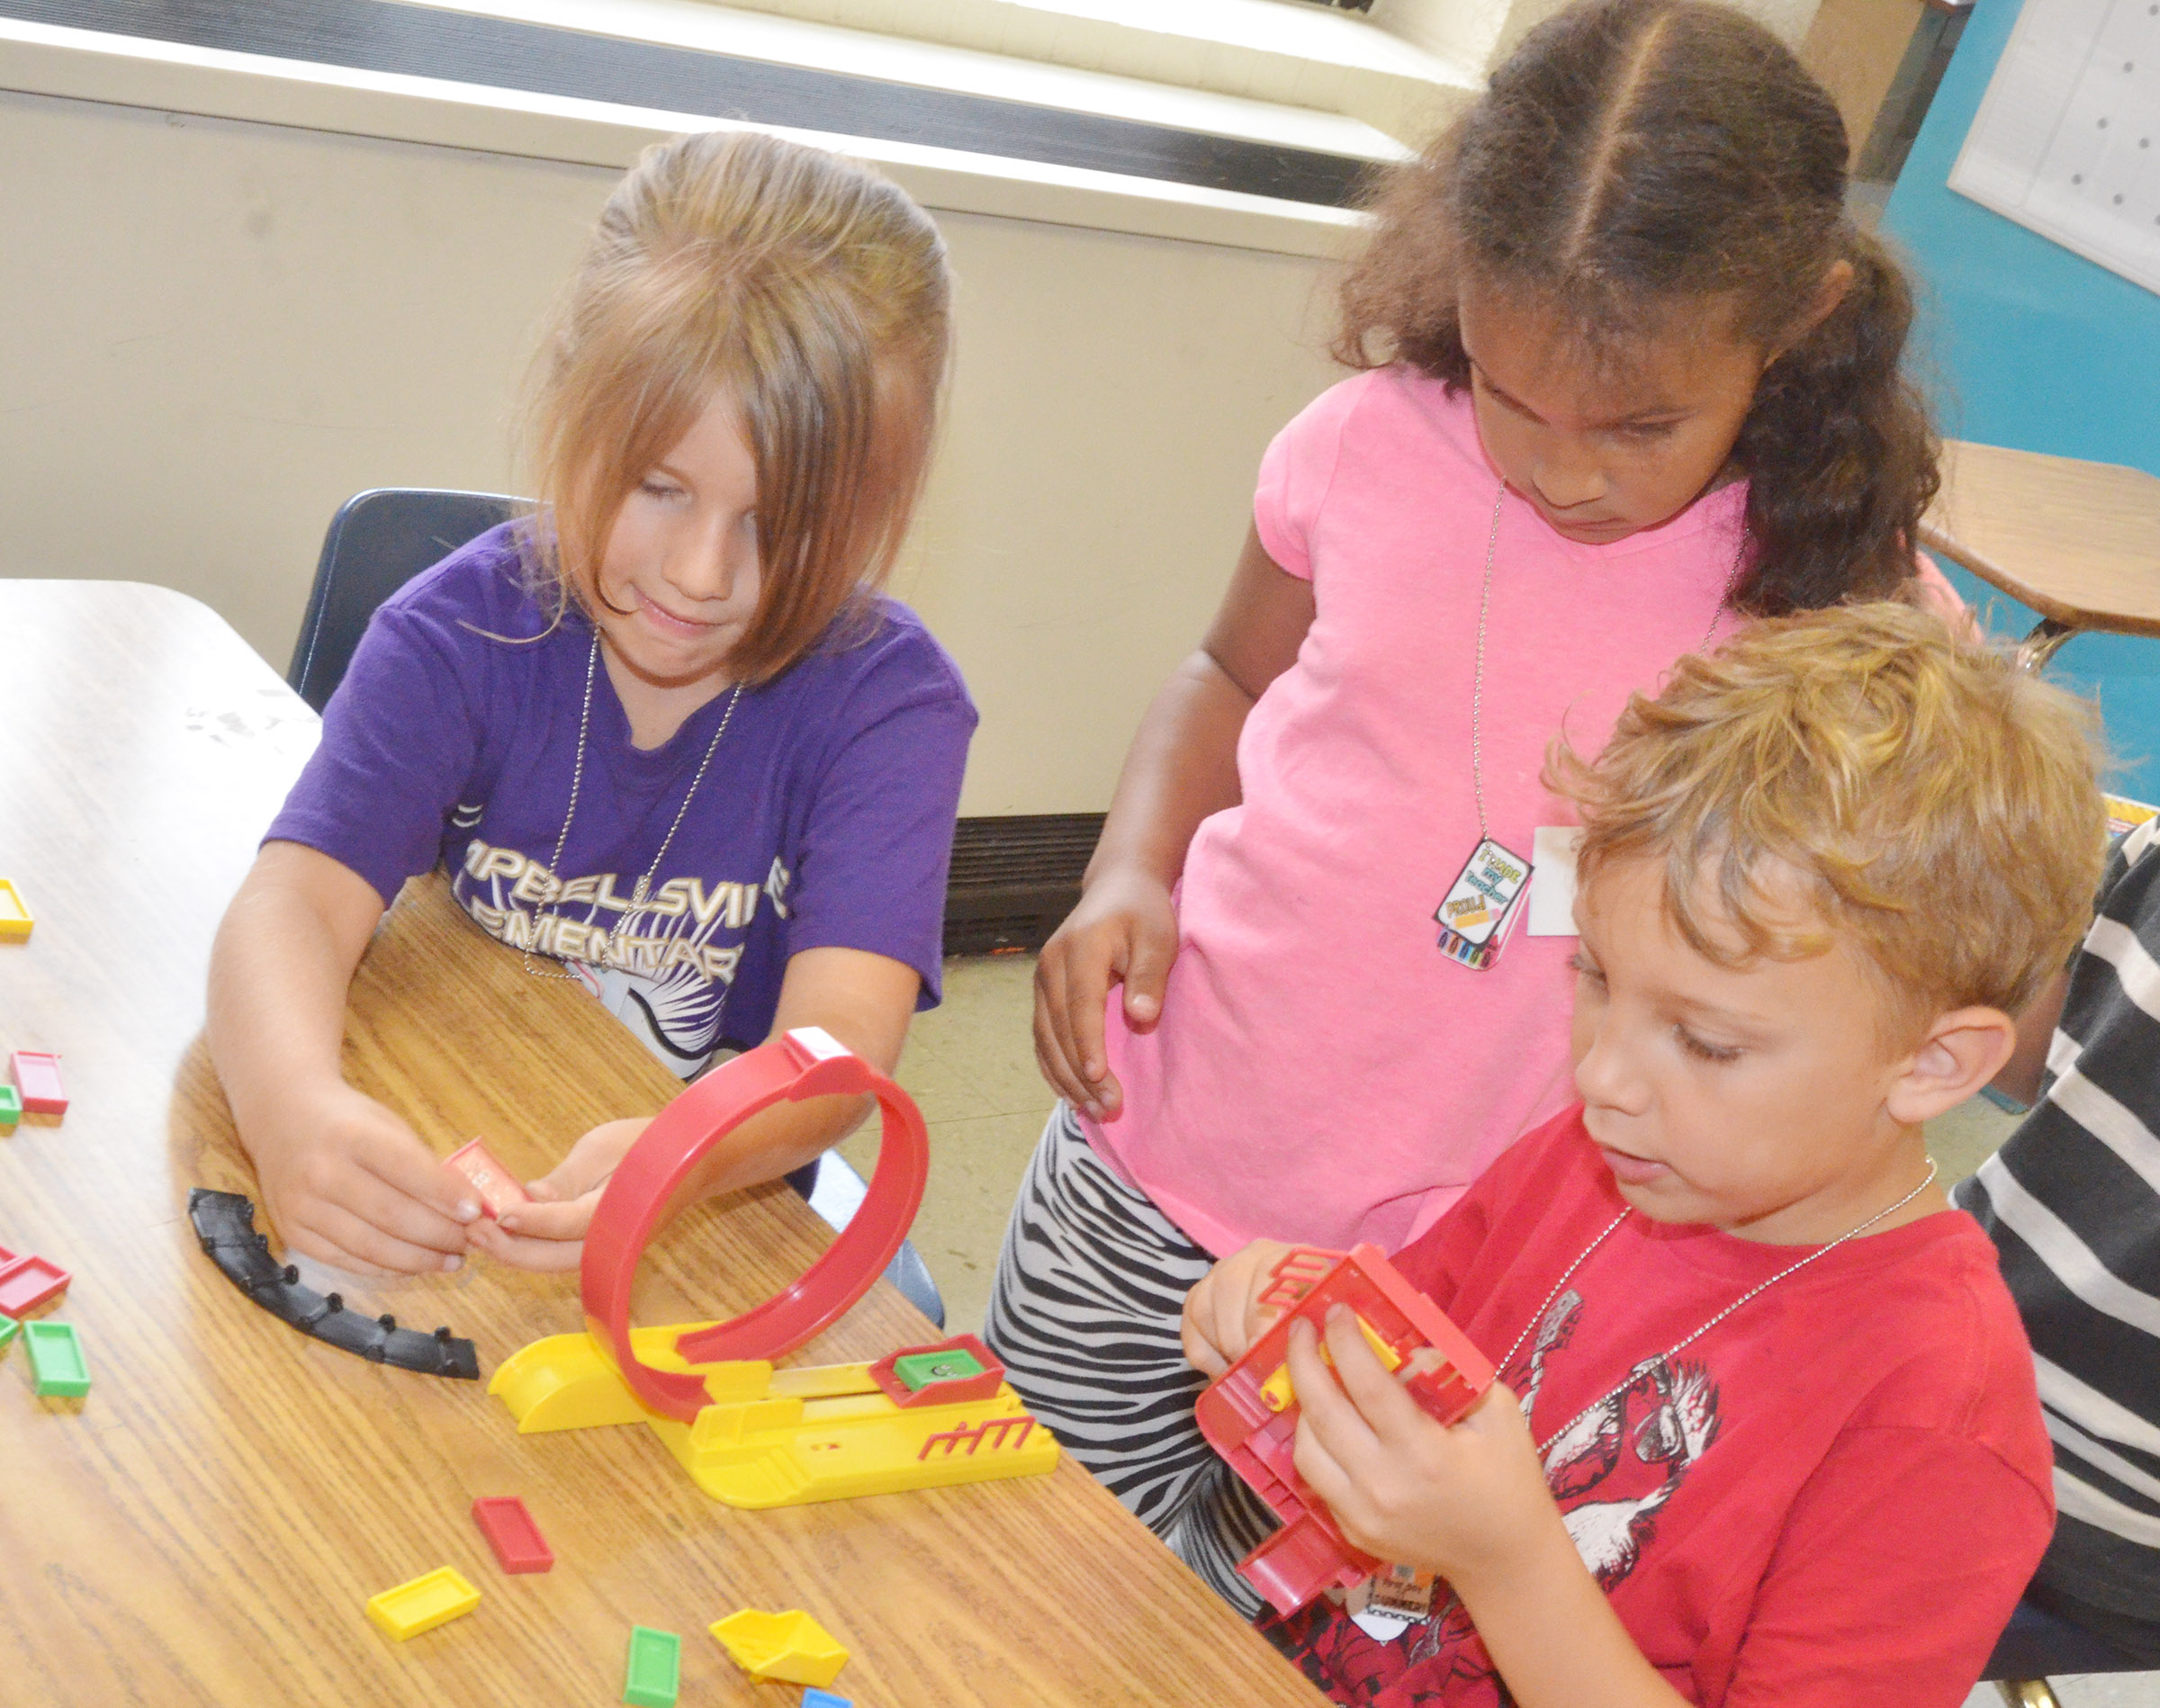 CES first-graders, from left, Kenady Hayes, Amani Bridgewater and Gabe Prior build a racetrack.